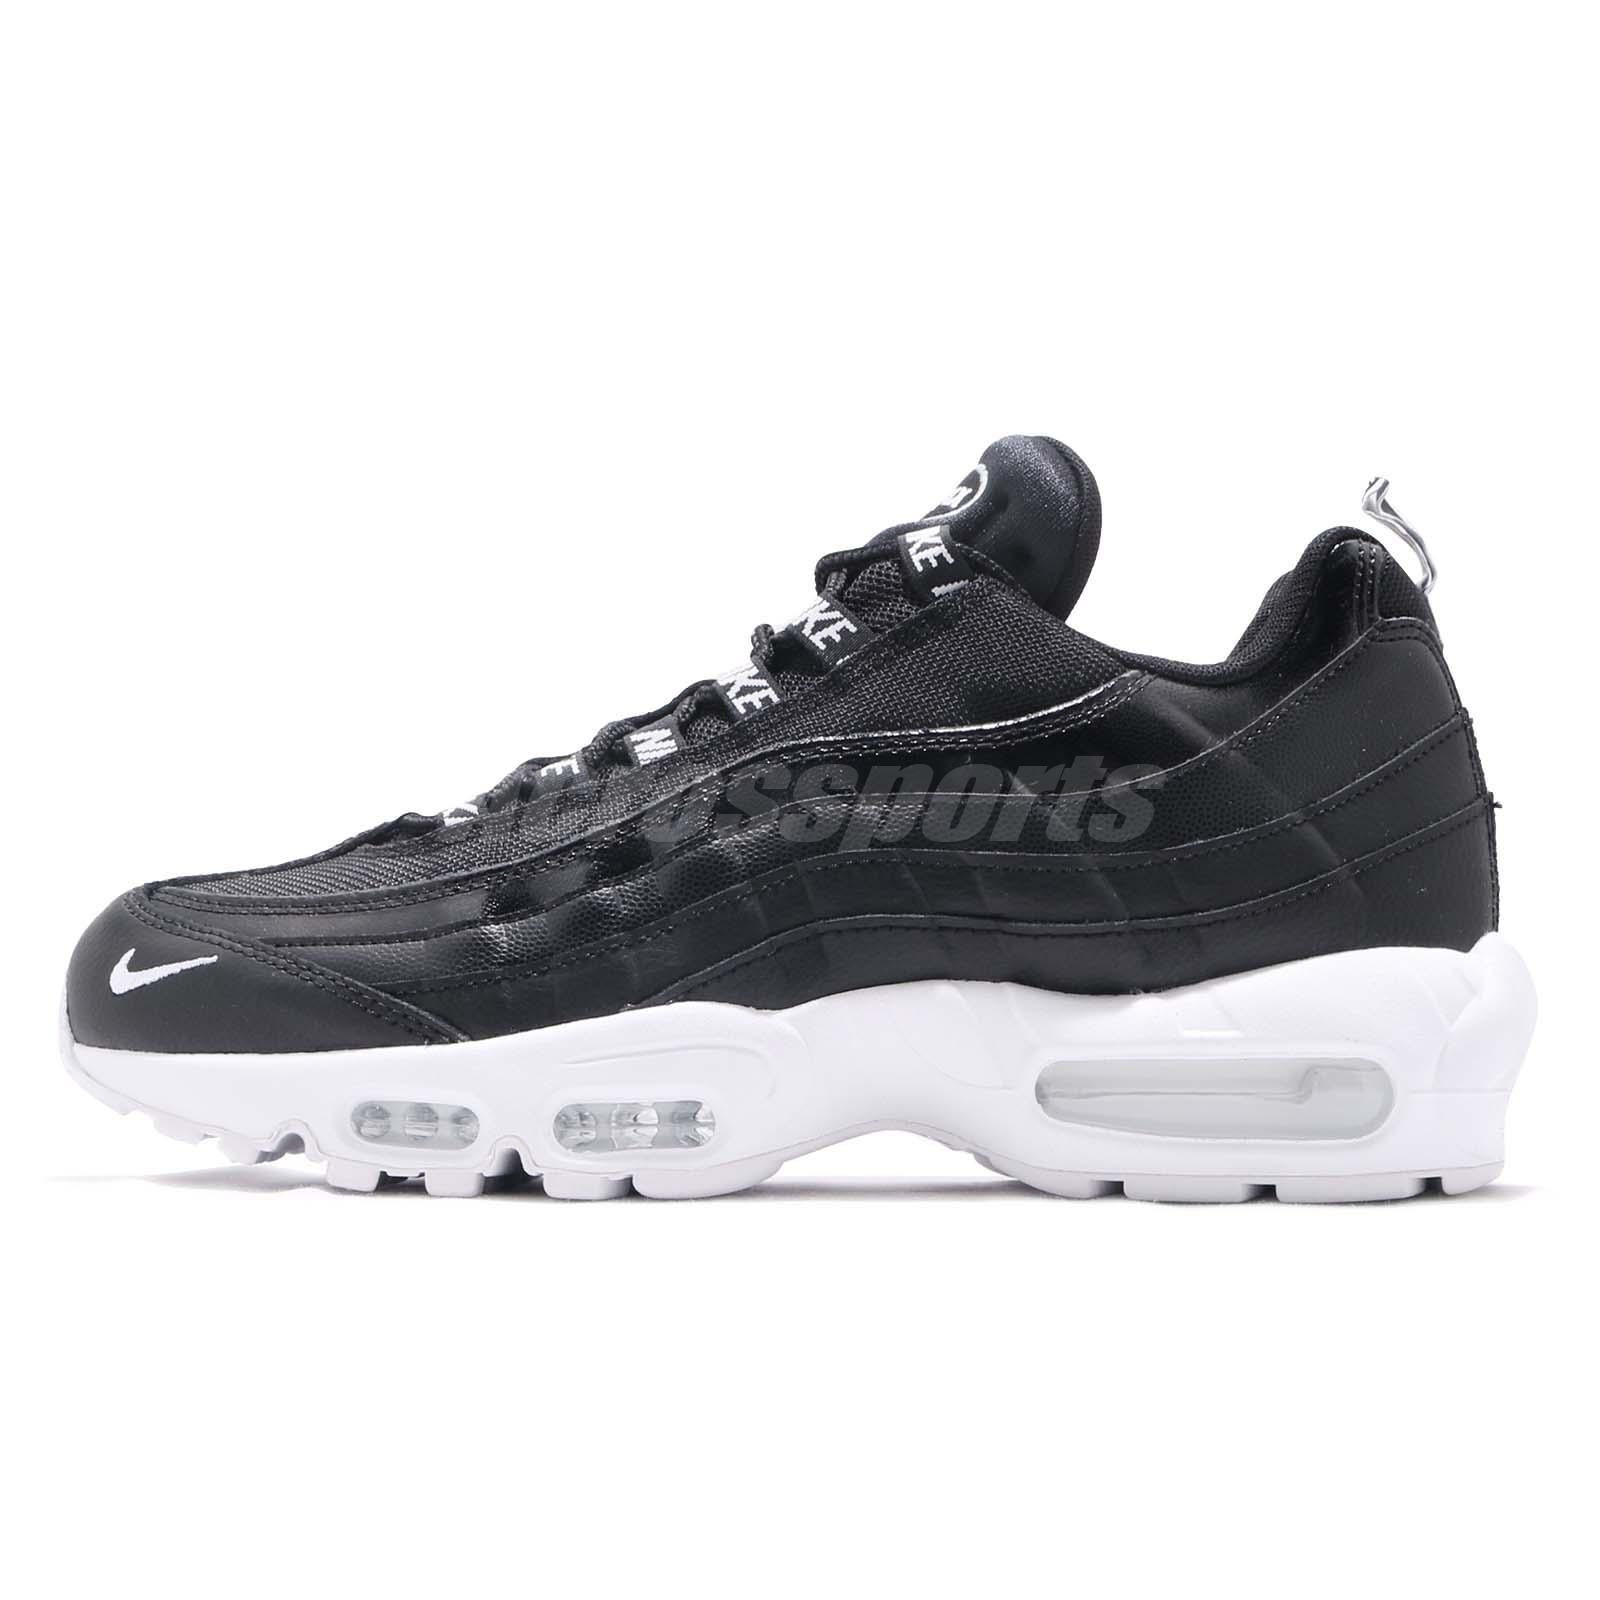 new products 019c1 c287e Nike Air Max 95 PRM Overbranded Black White Men Running Shoes Sneaker 538416 -020